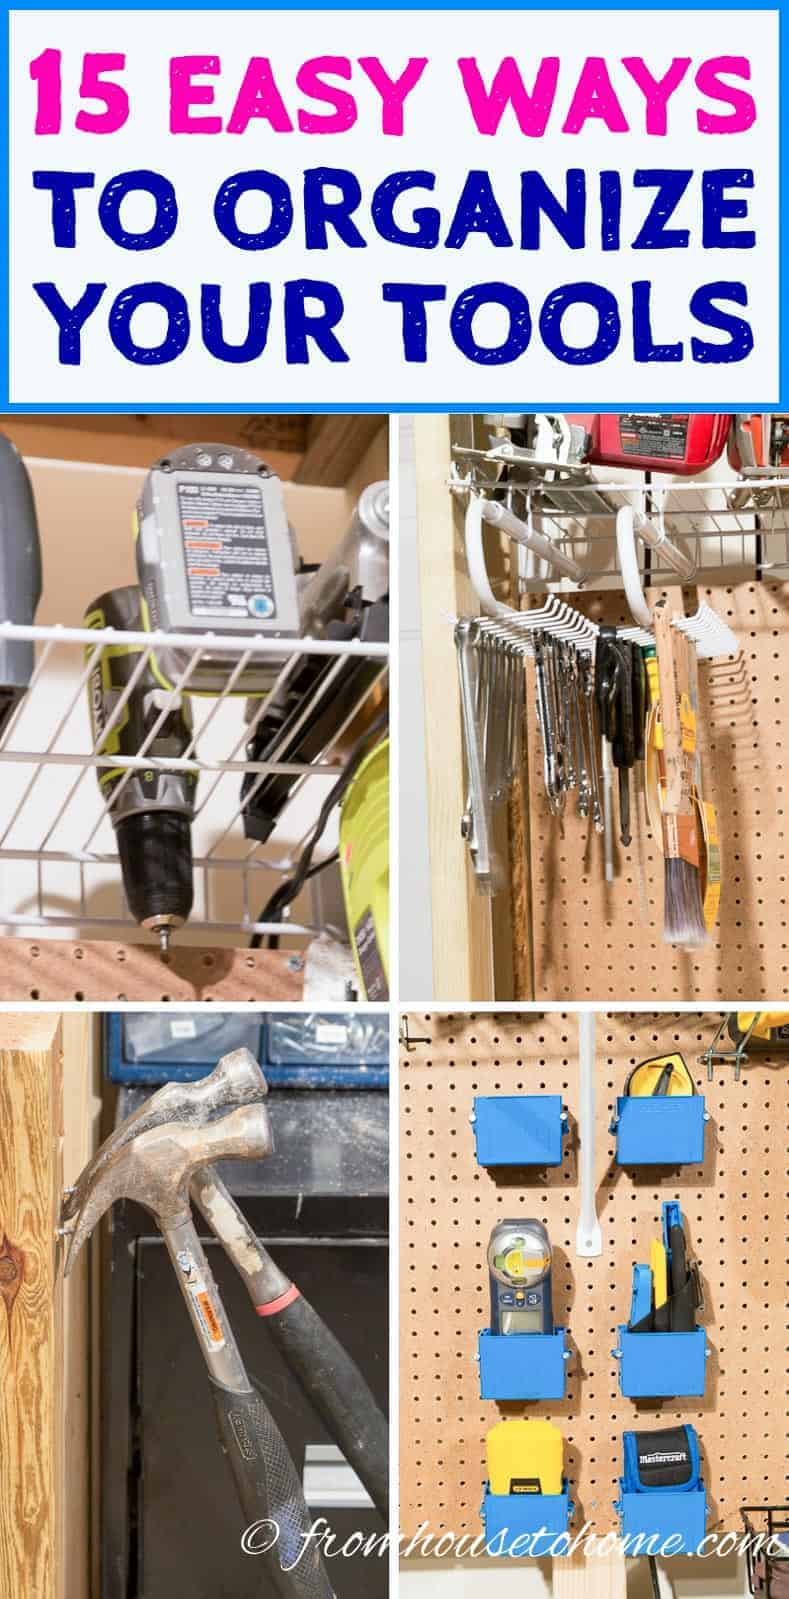 15 Clever Ways to Organize Tools (So You Can Find Them)